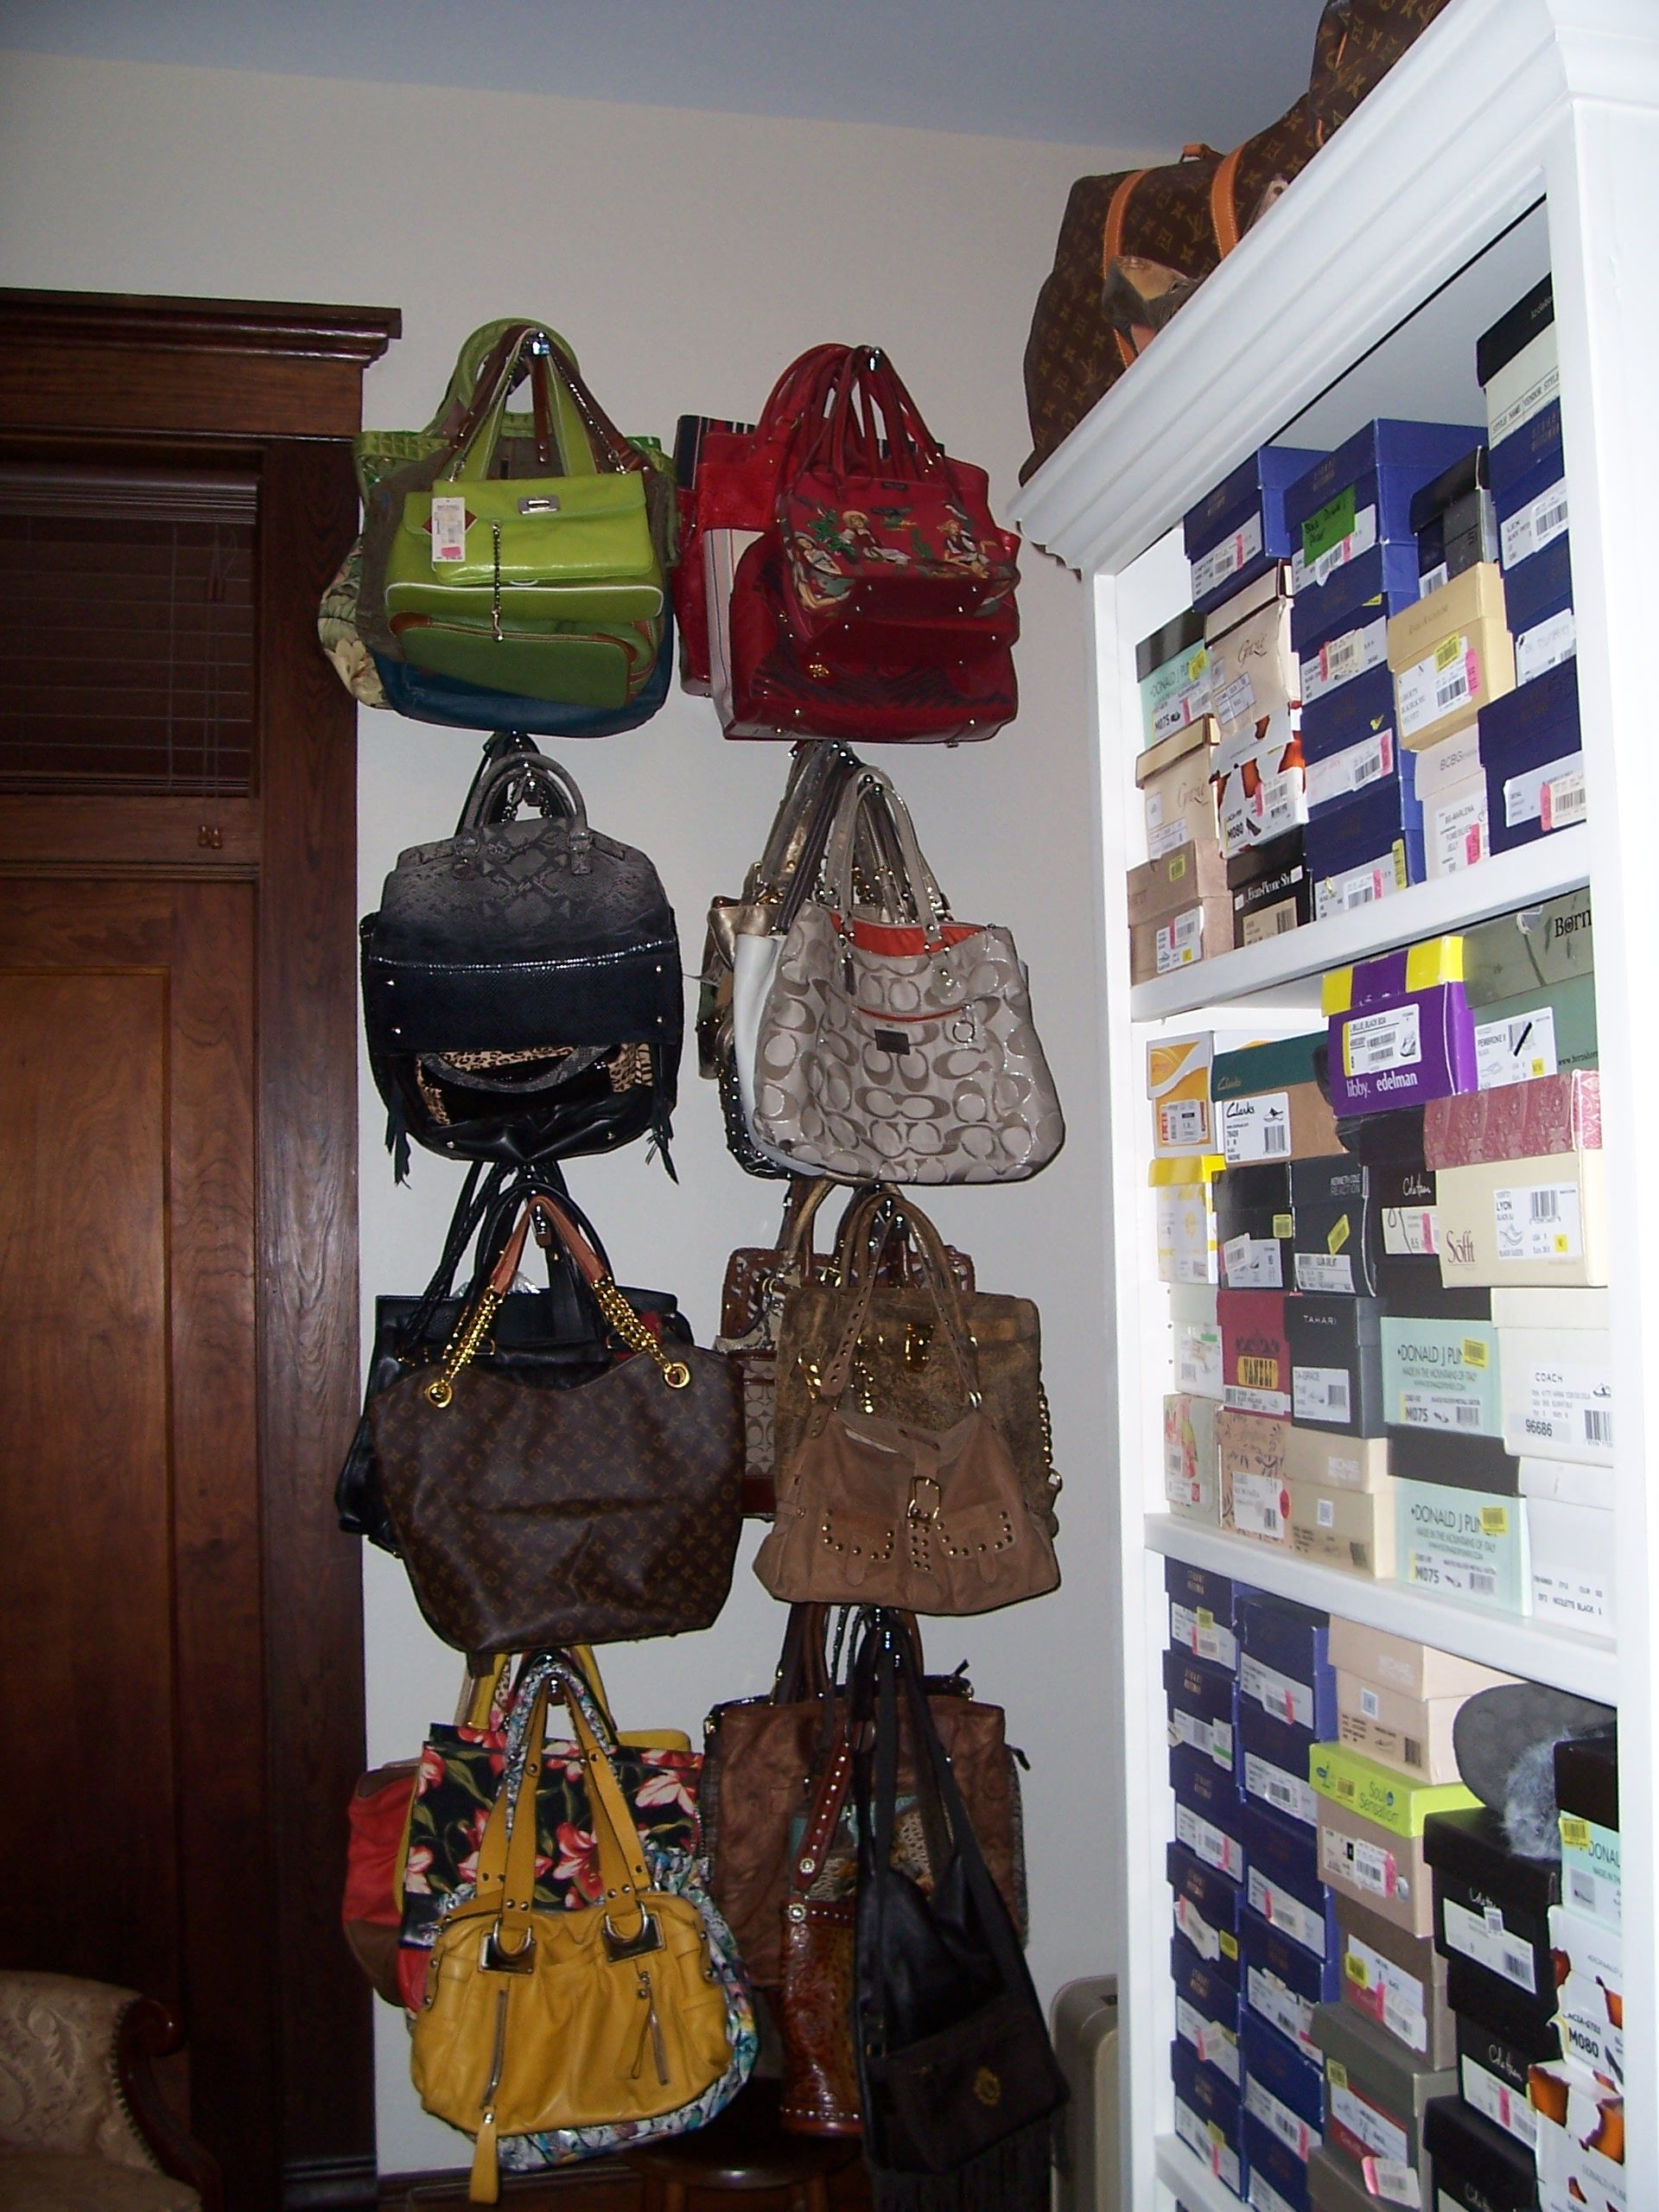 Ideas For Hanging Purses Hanging Purses For Multiple Purses On On Rod  Renovations 2015 .